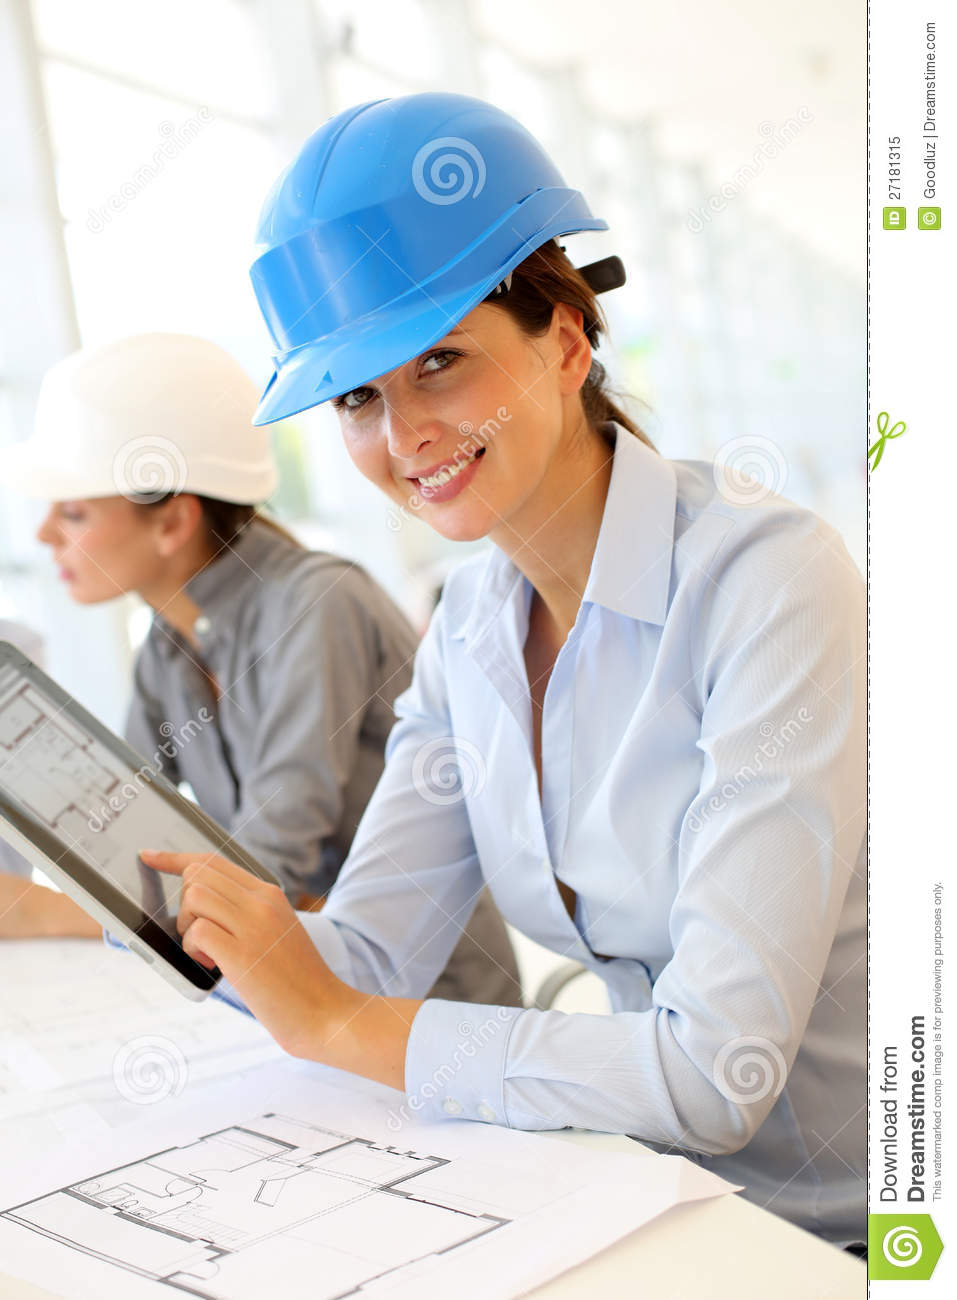 Smiling architect at work royalty free stock photo image for Architect at work